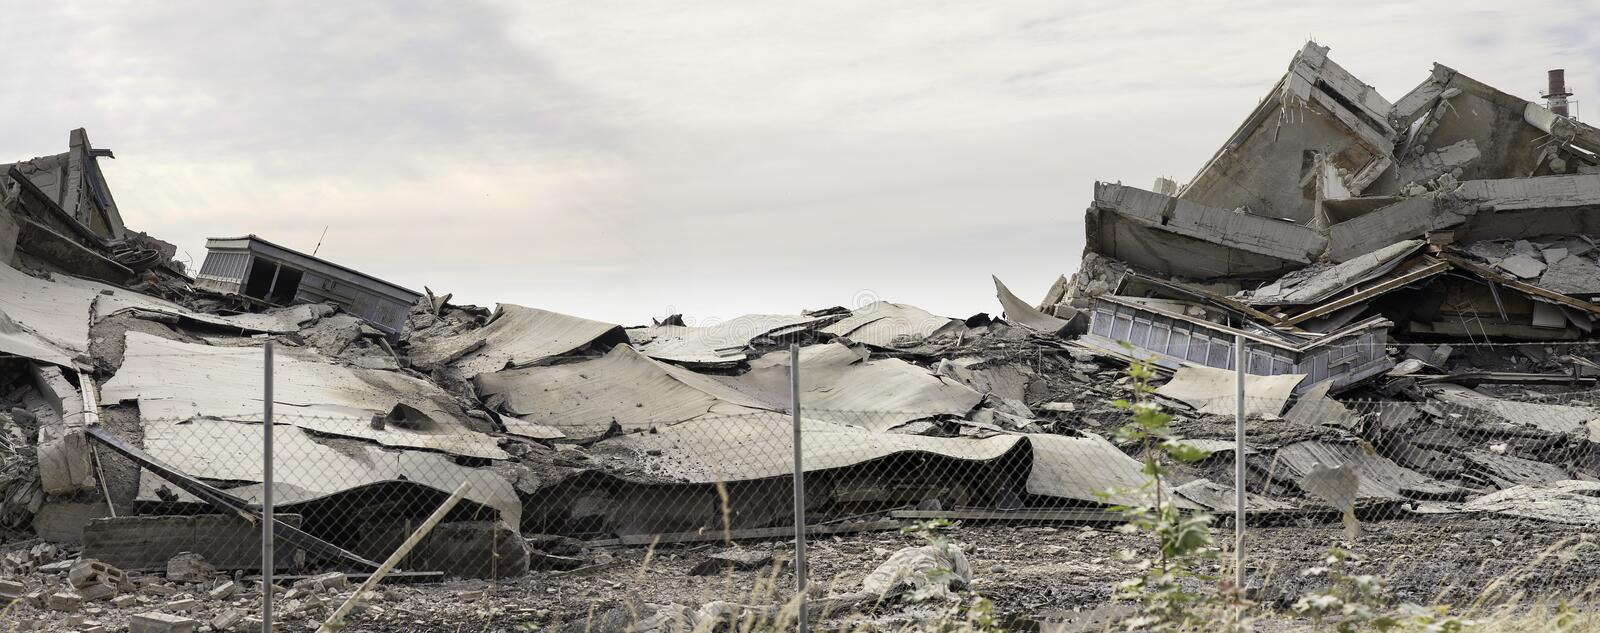 Industrial concrete building destructed by strike. Disaster scene full of debris, dust and crashed buildings.  stock images